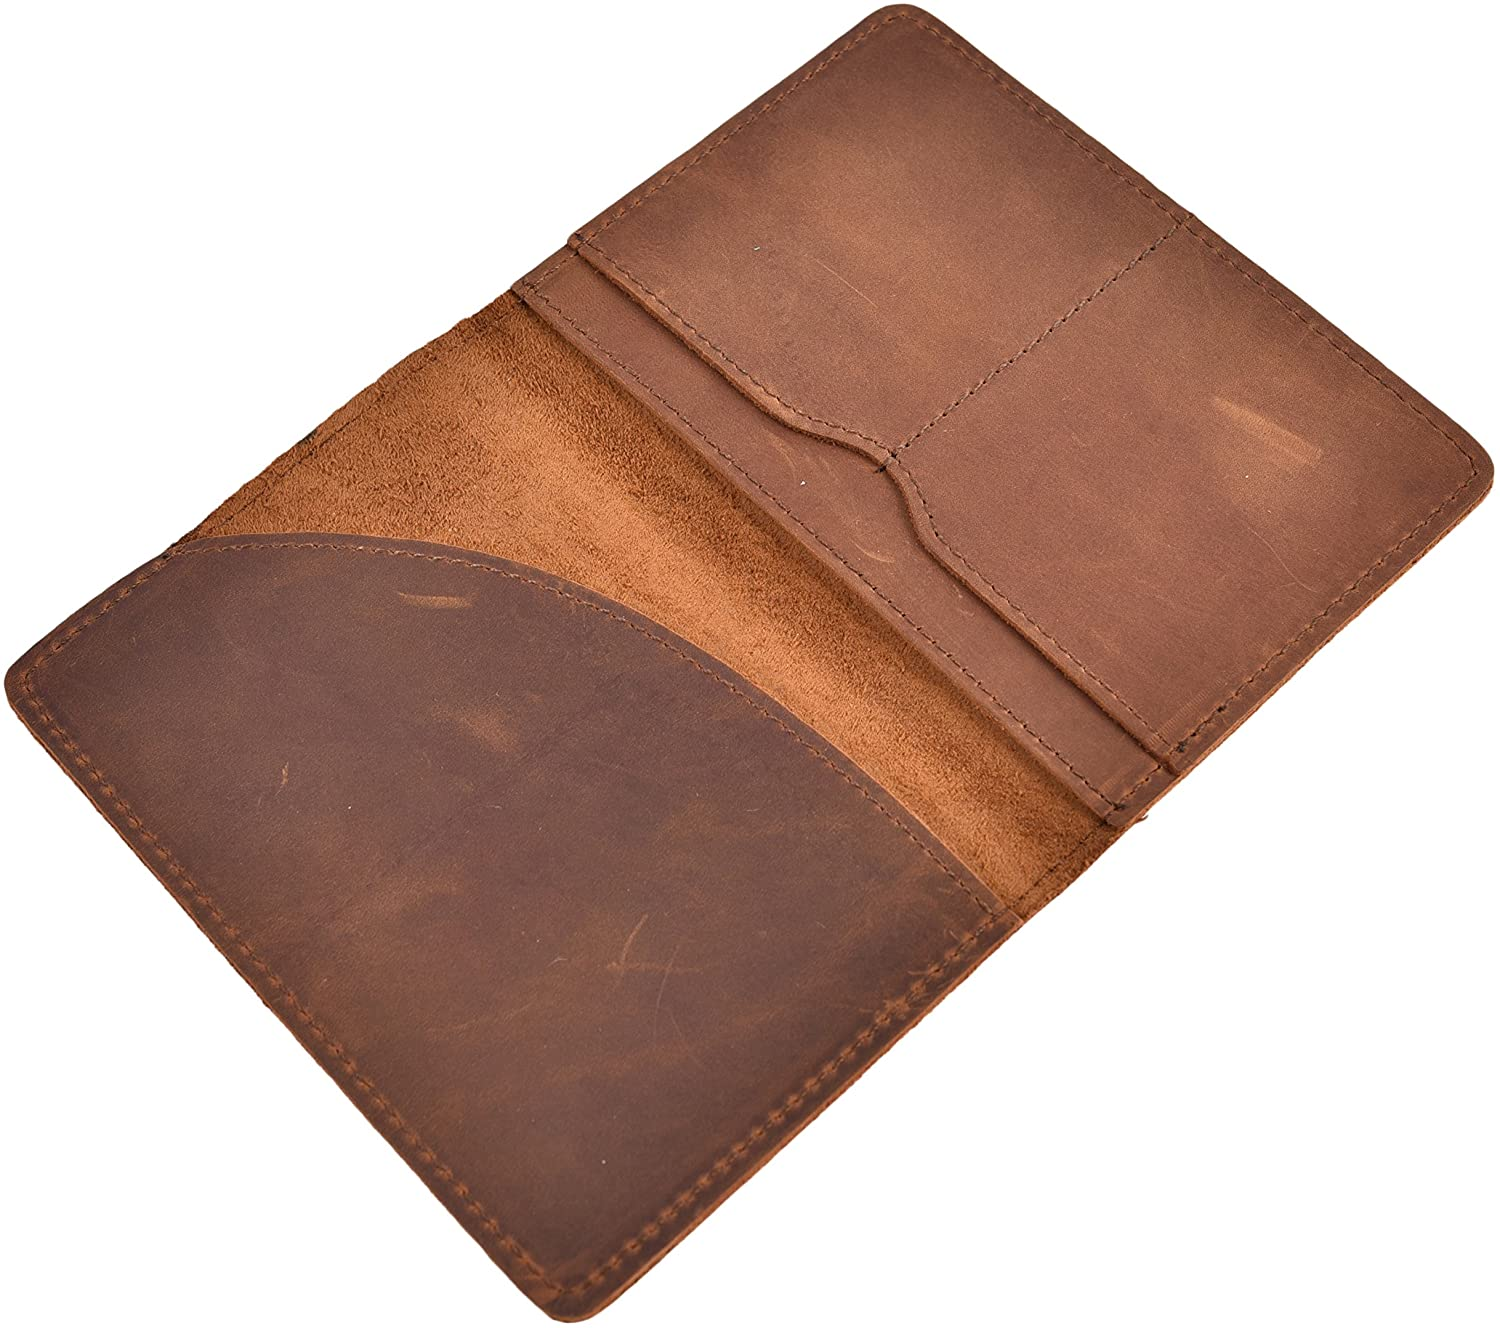 Travel Wallet Soft Leather Passport Holder And Luggage Belt  Leather Passport Holder